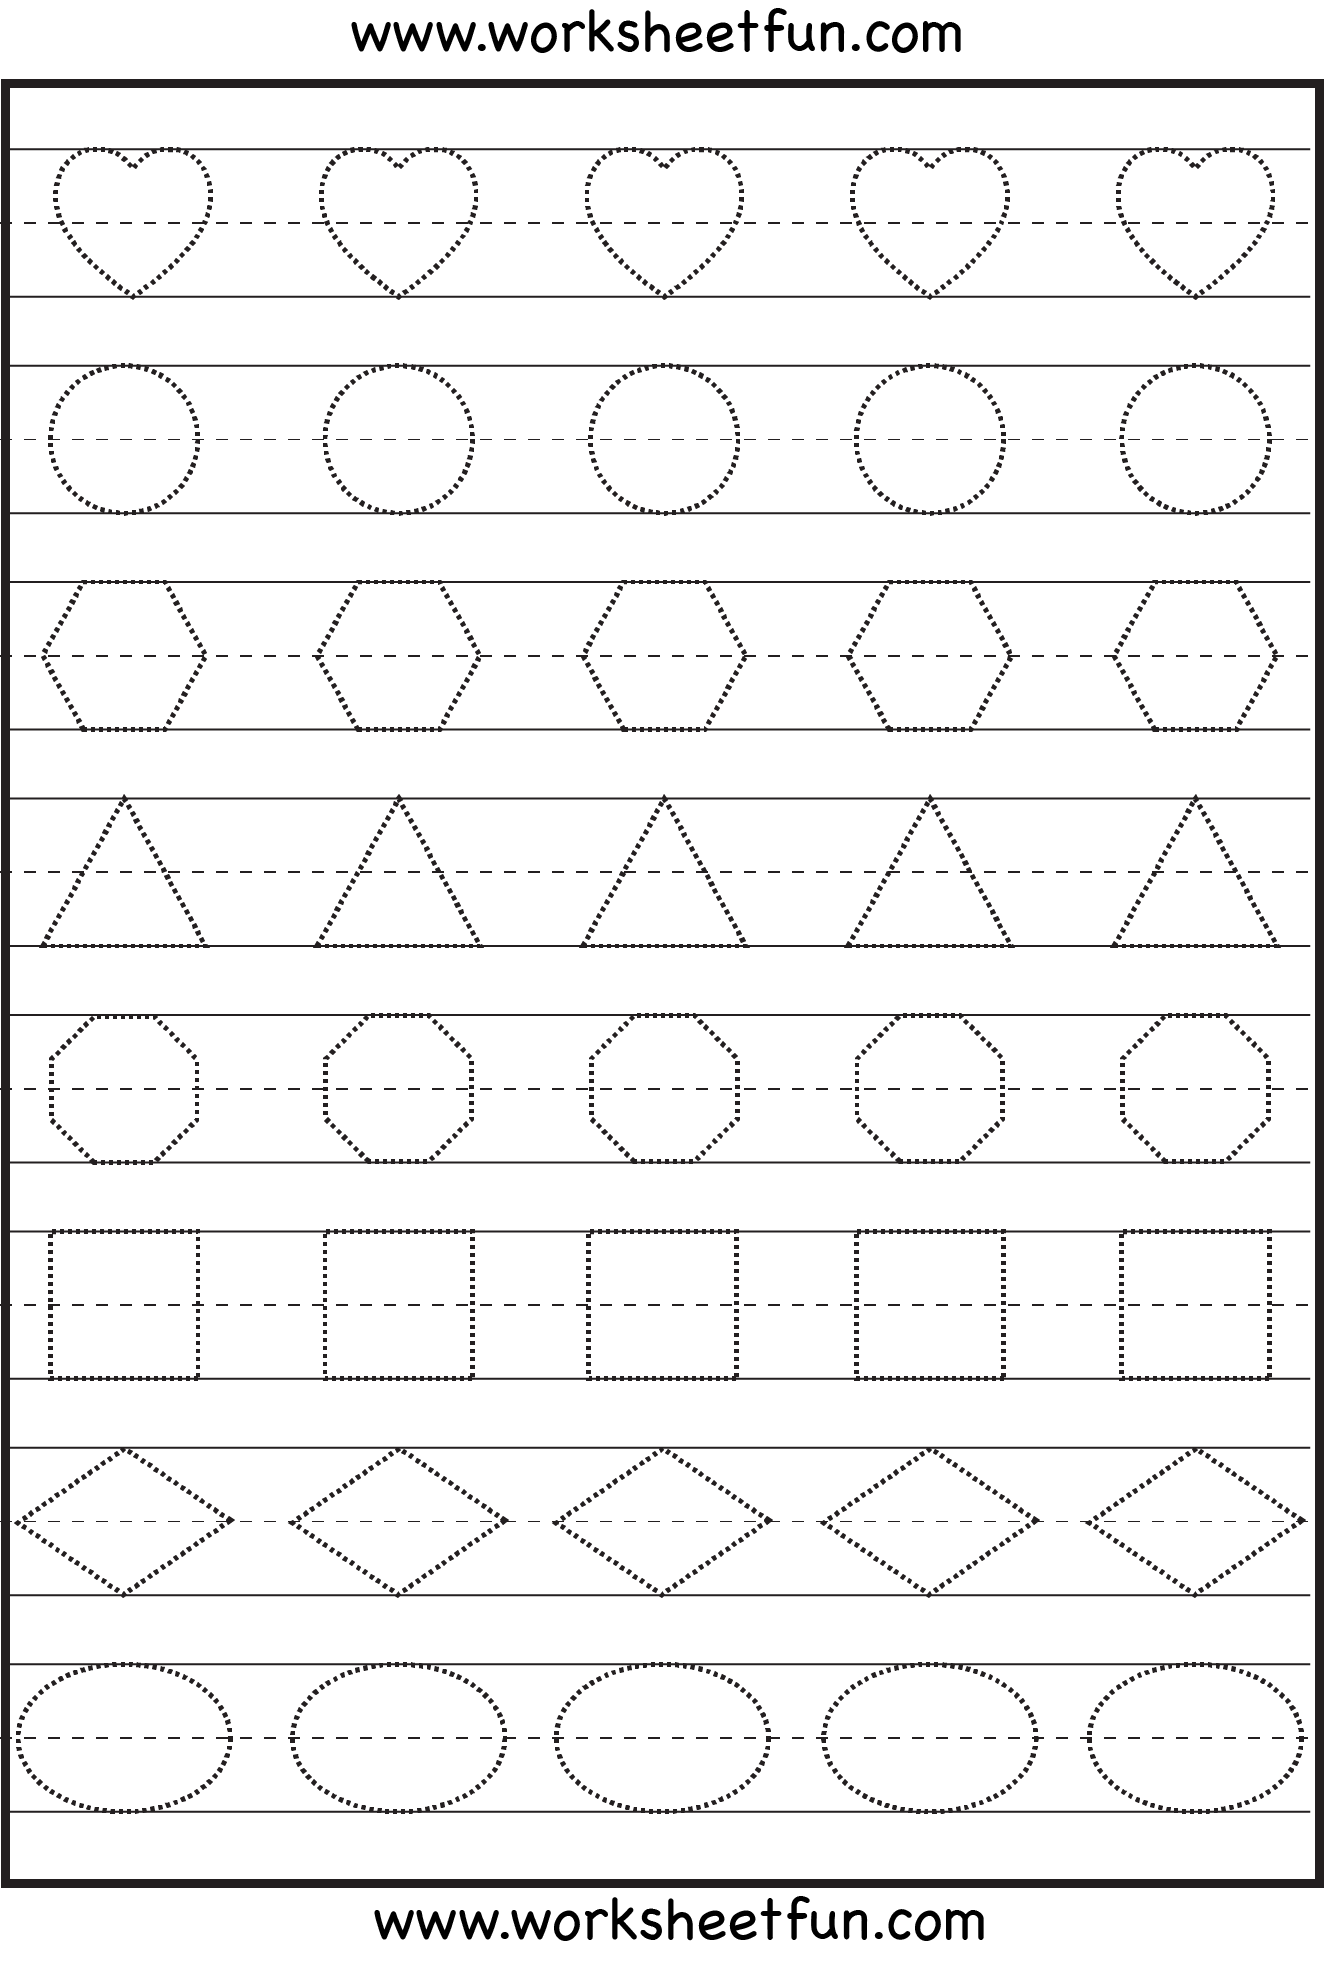 Printables Free Tracing Worksheets For Preschoolers 1000 images about school on pinterest alphabet worksheets letter b and preschool